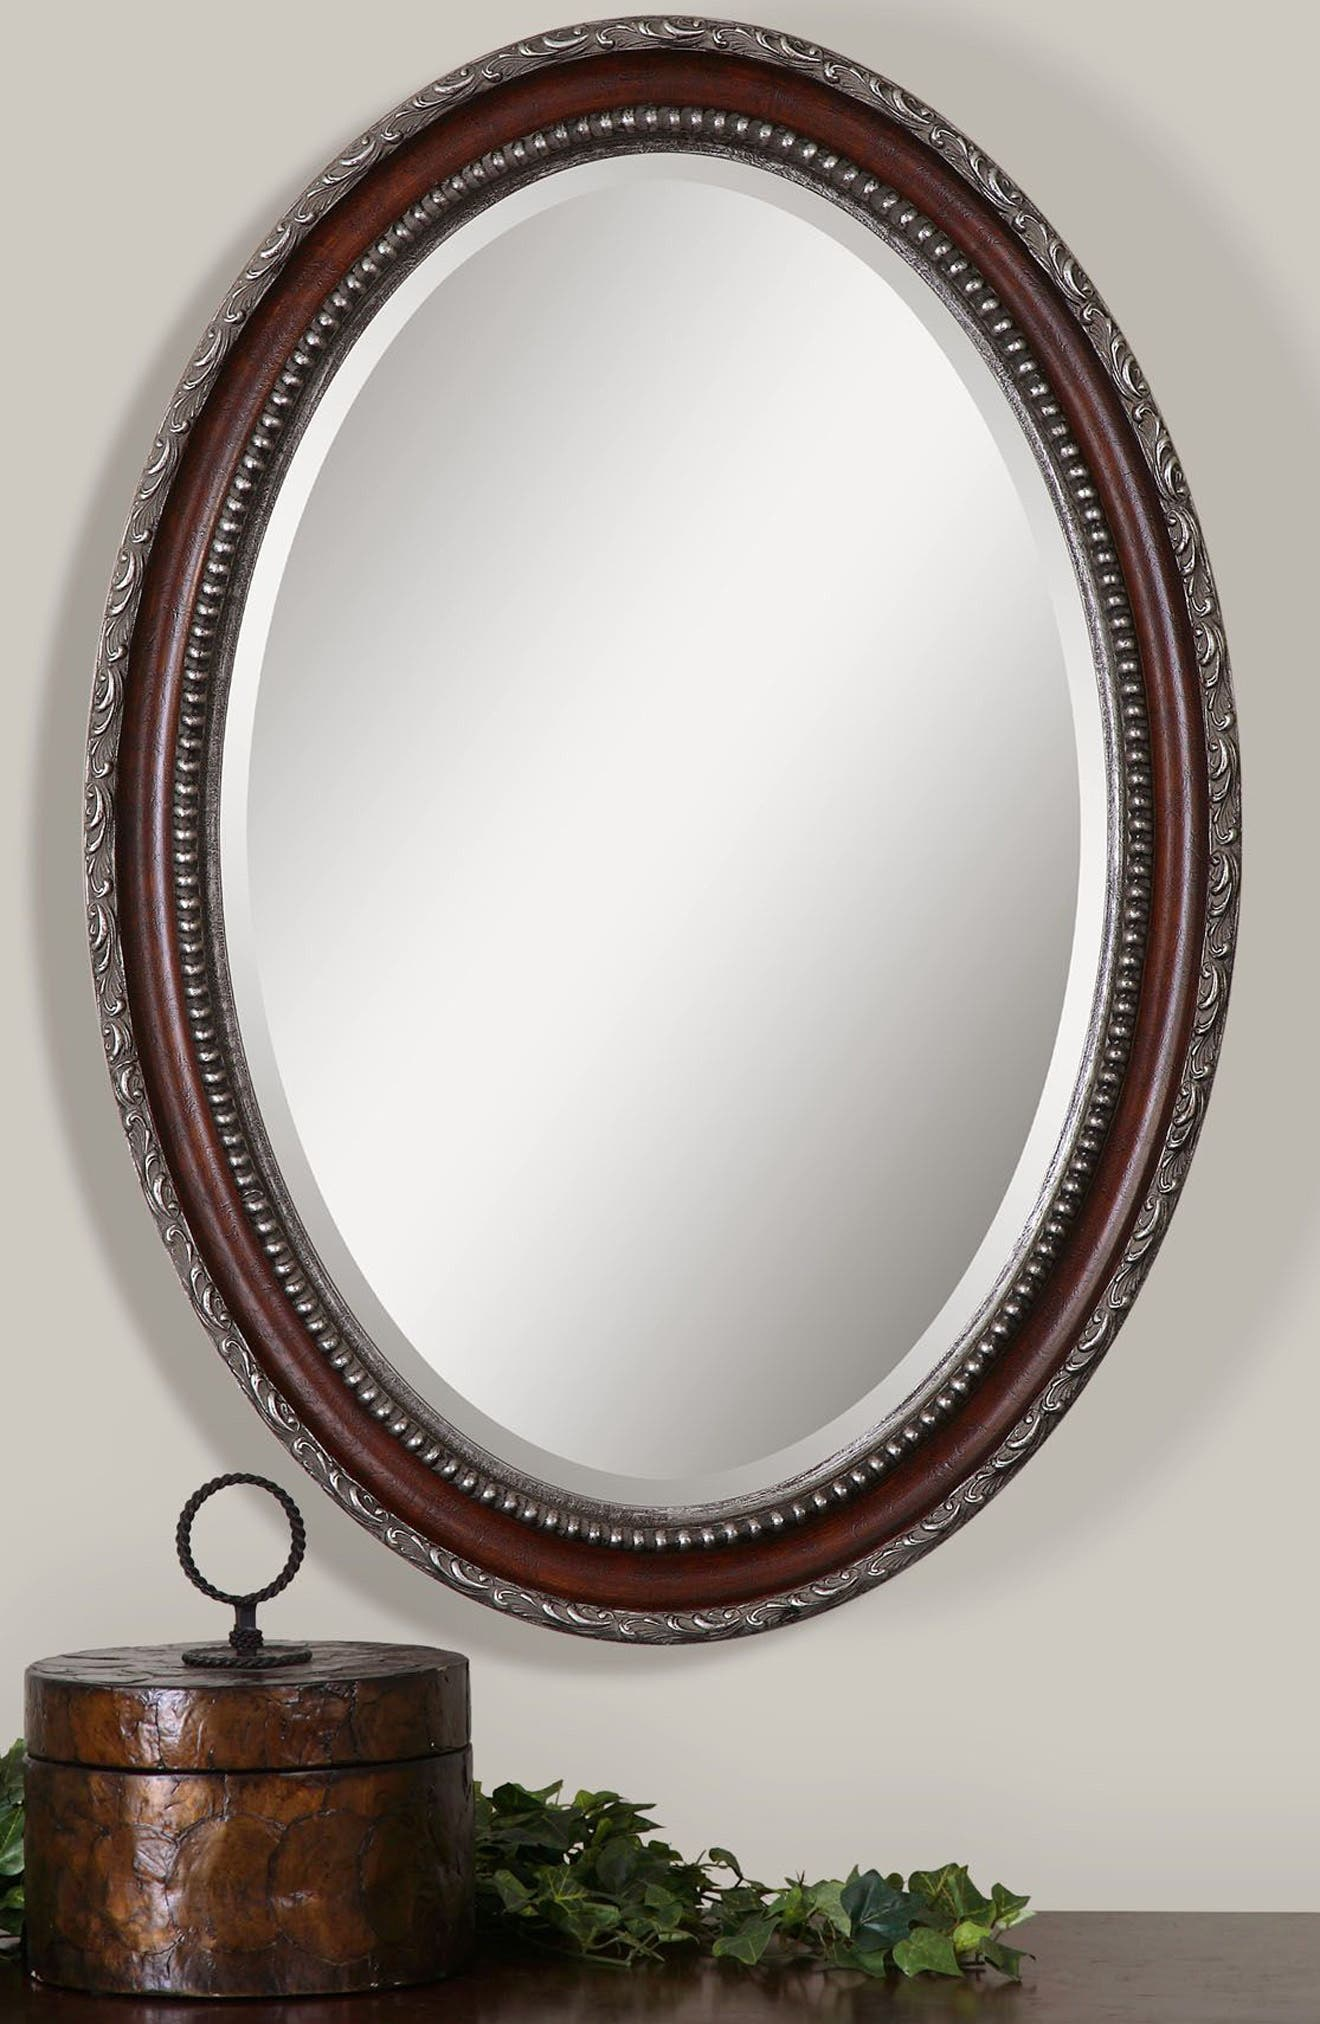 Montrose Oval Wall Mirror,                             Alternate thumbnail 2, color,                             Brown